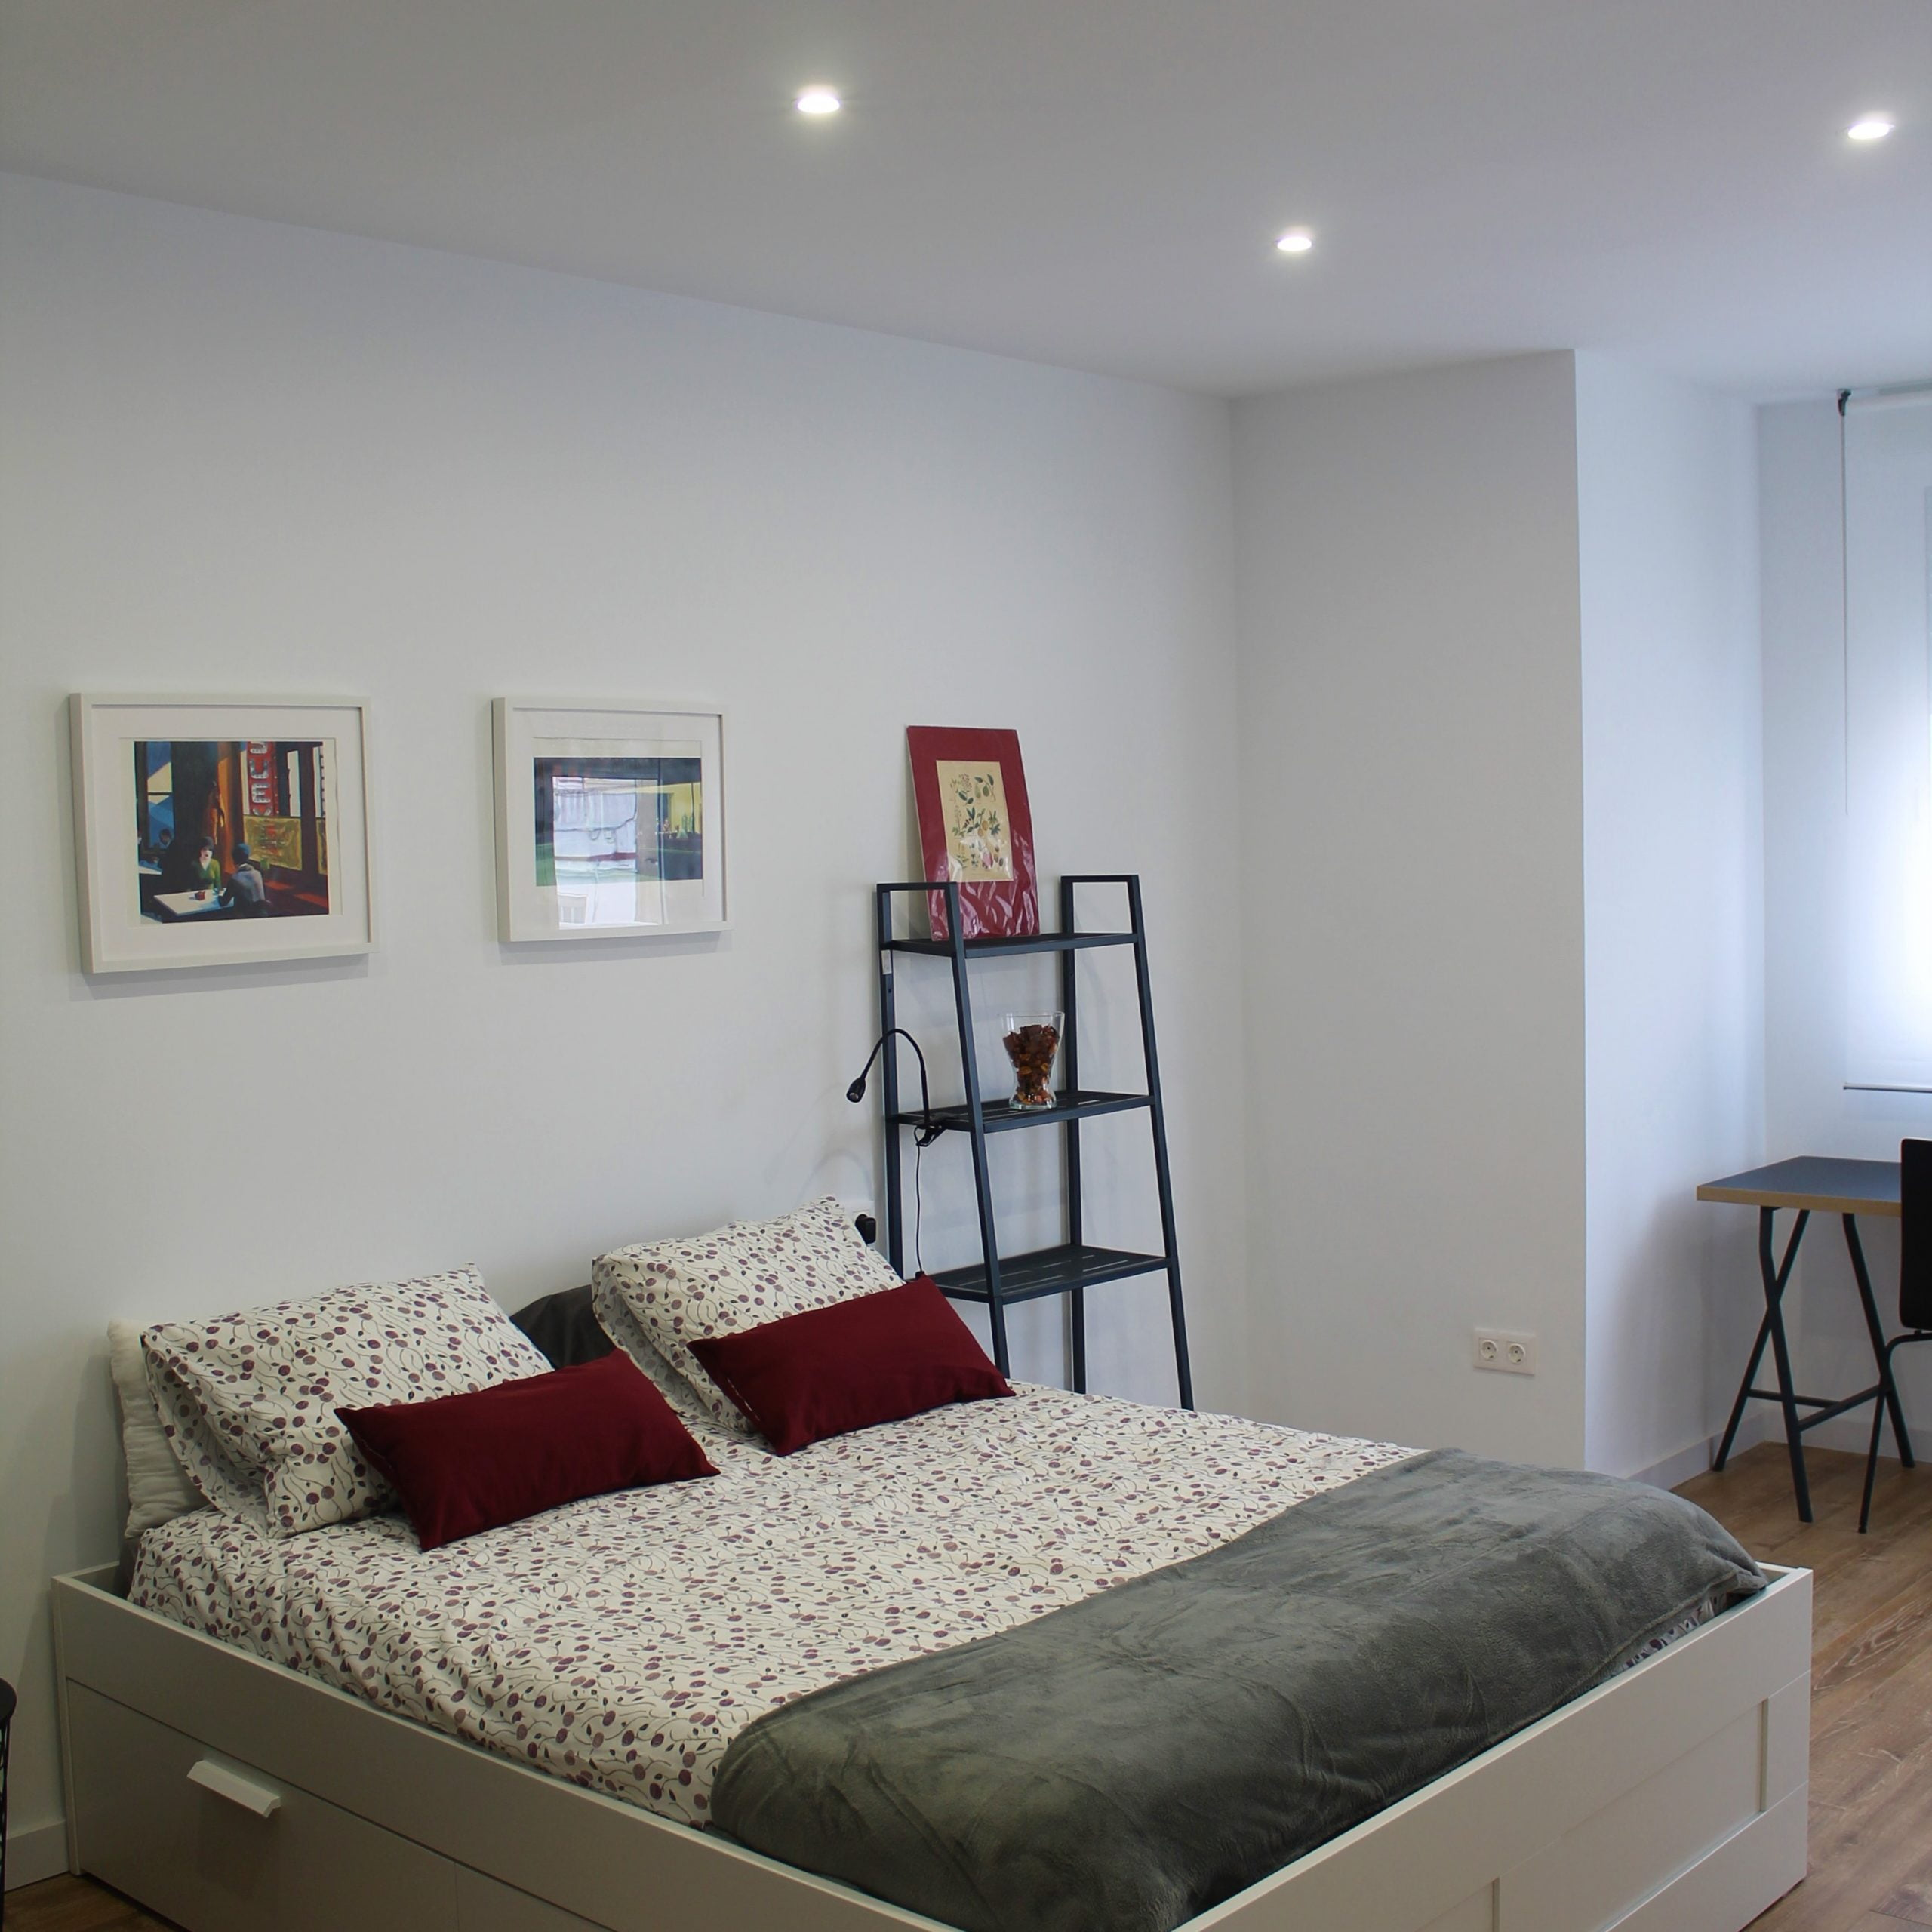 Reino 84 - New expat apartment in Valencia city centre